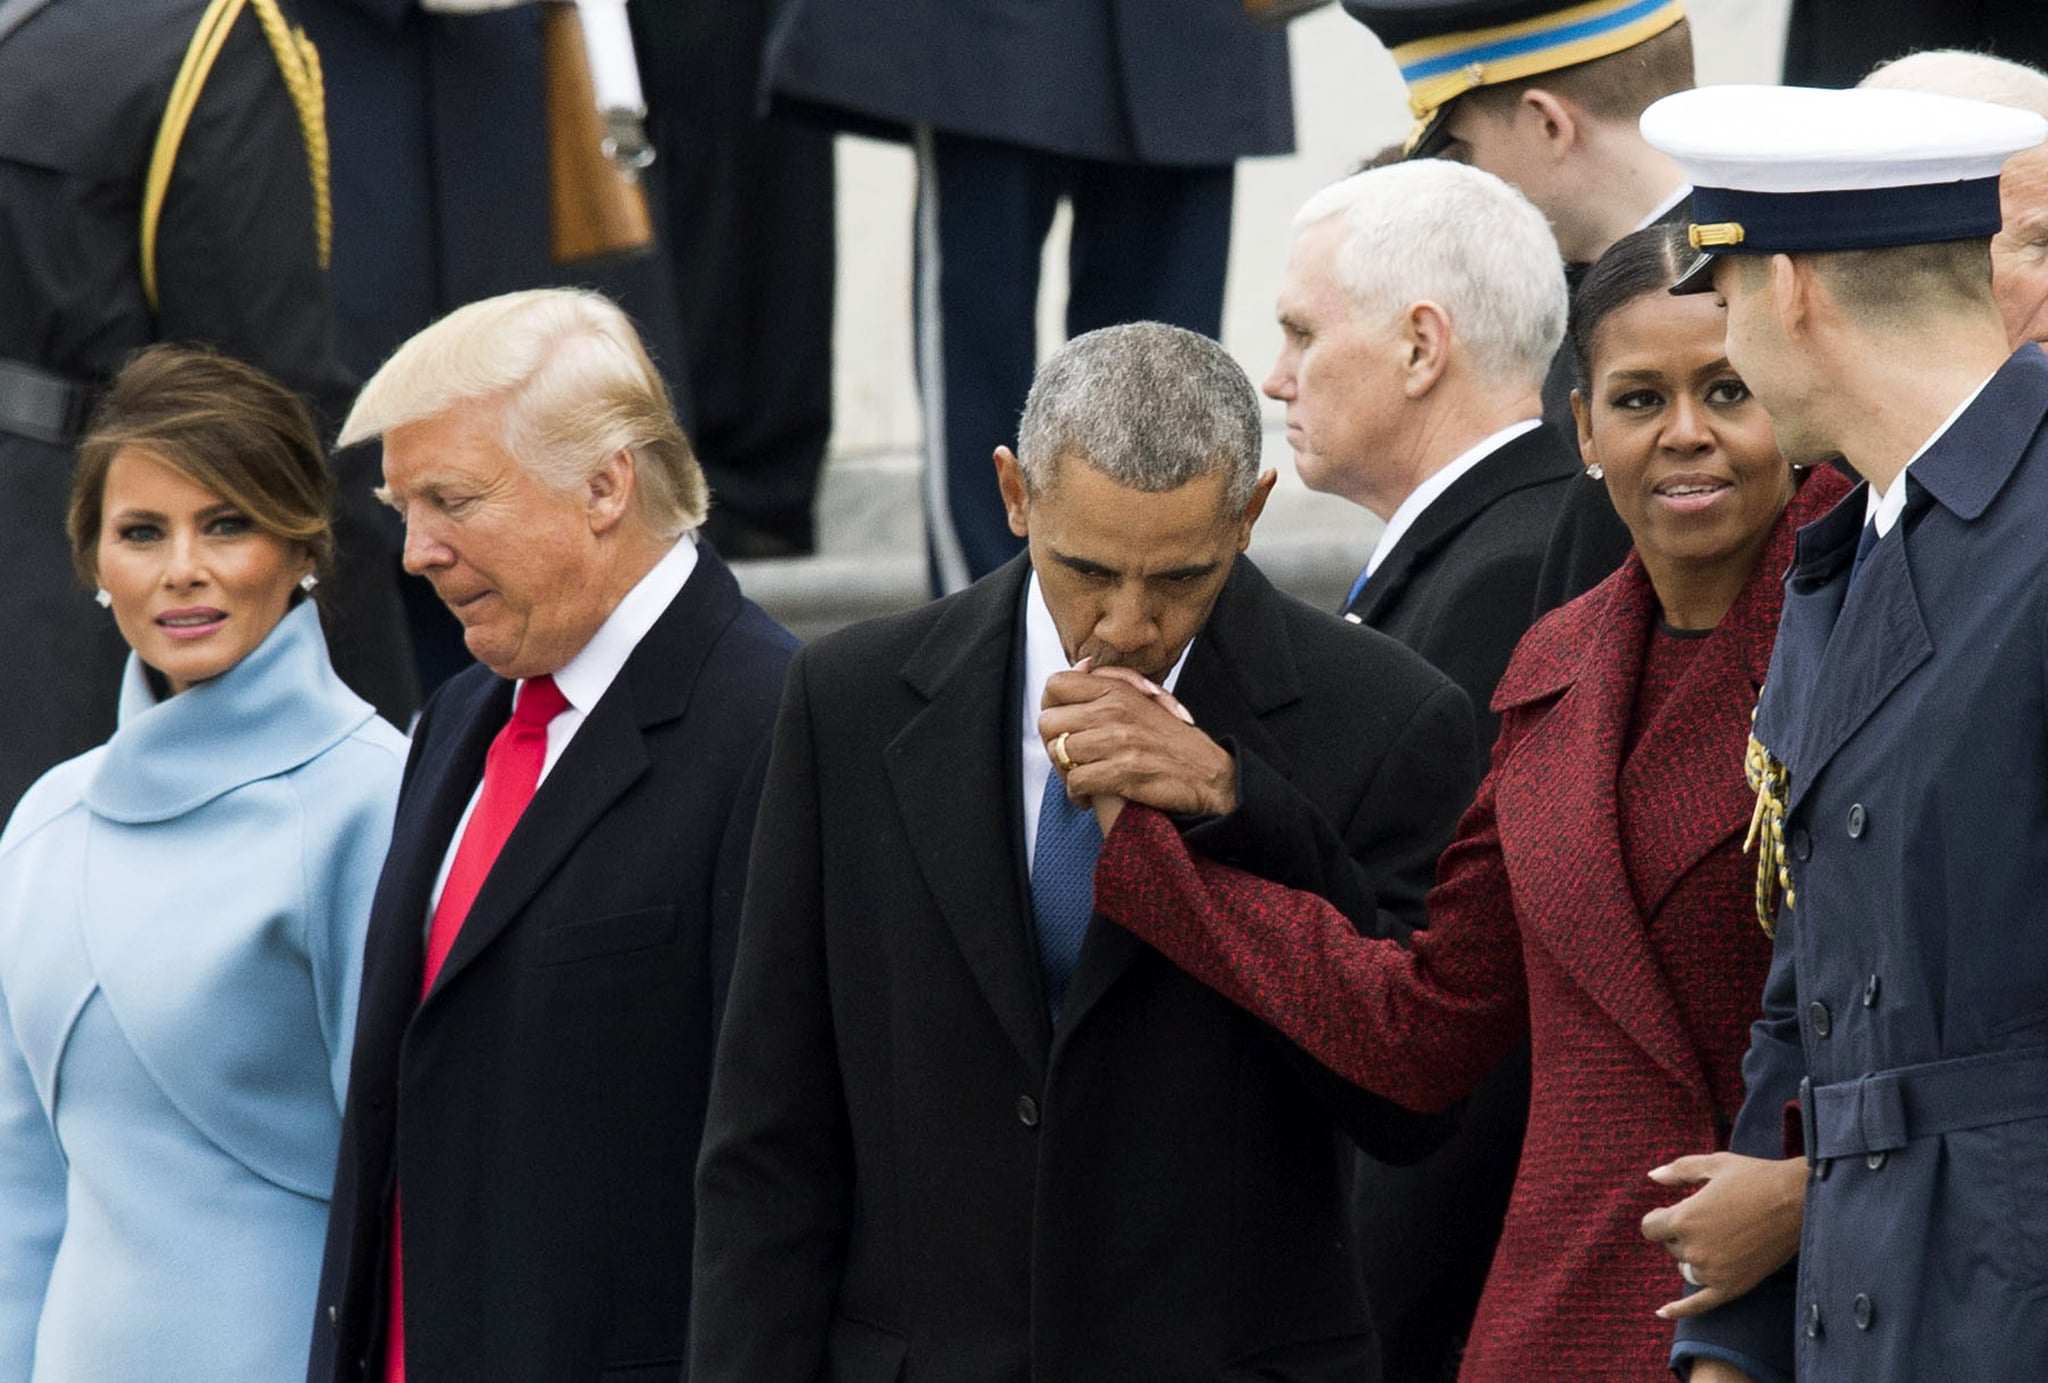 Inauguration photo of obamas and trumps next to each other still it represents how the trumps seem less comfortable in the spotlight while the obamas are known for their welcoming personalities and affection for m4hsunfo